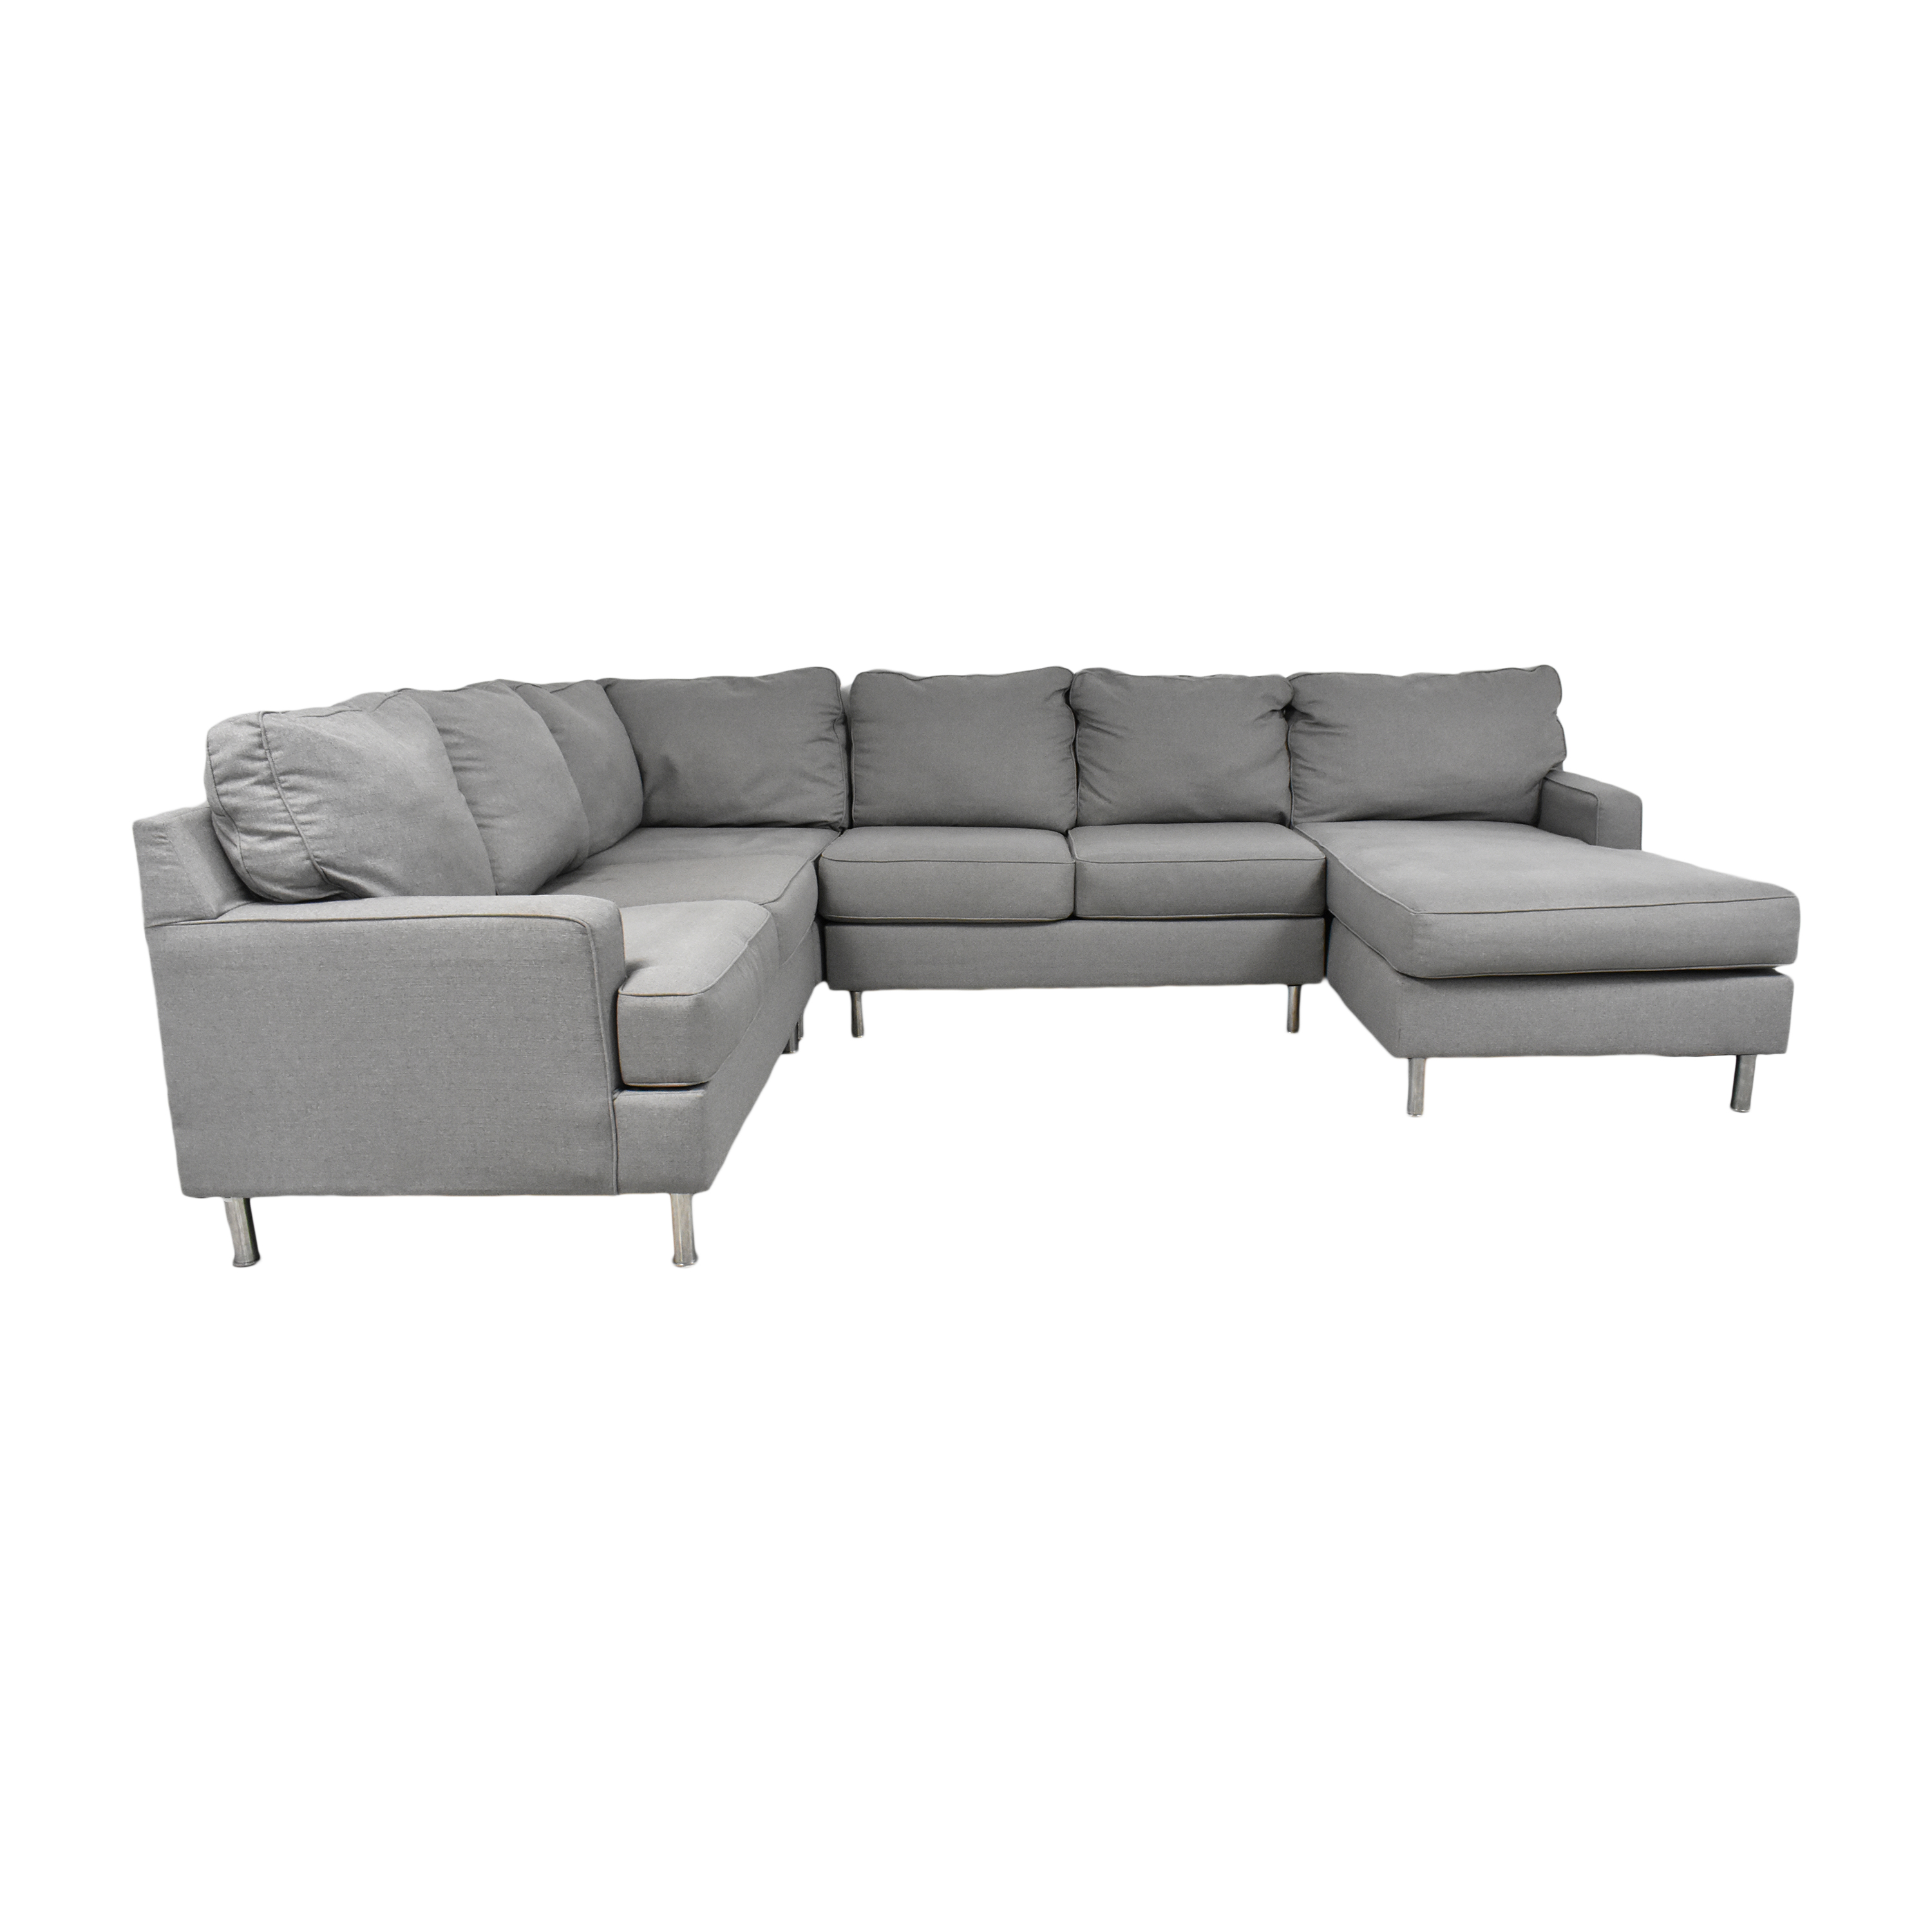 Ashley Furniture Ashley Furniture Modern Four Piece Chaise Sectional Sofas